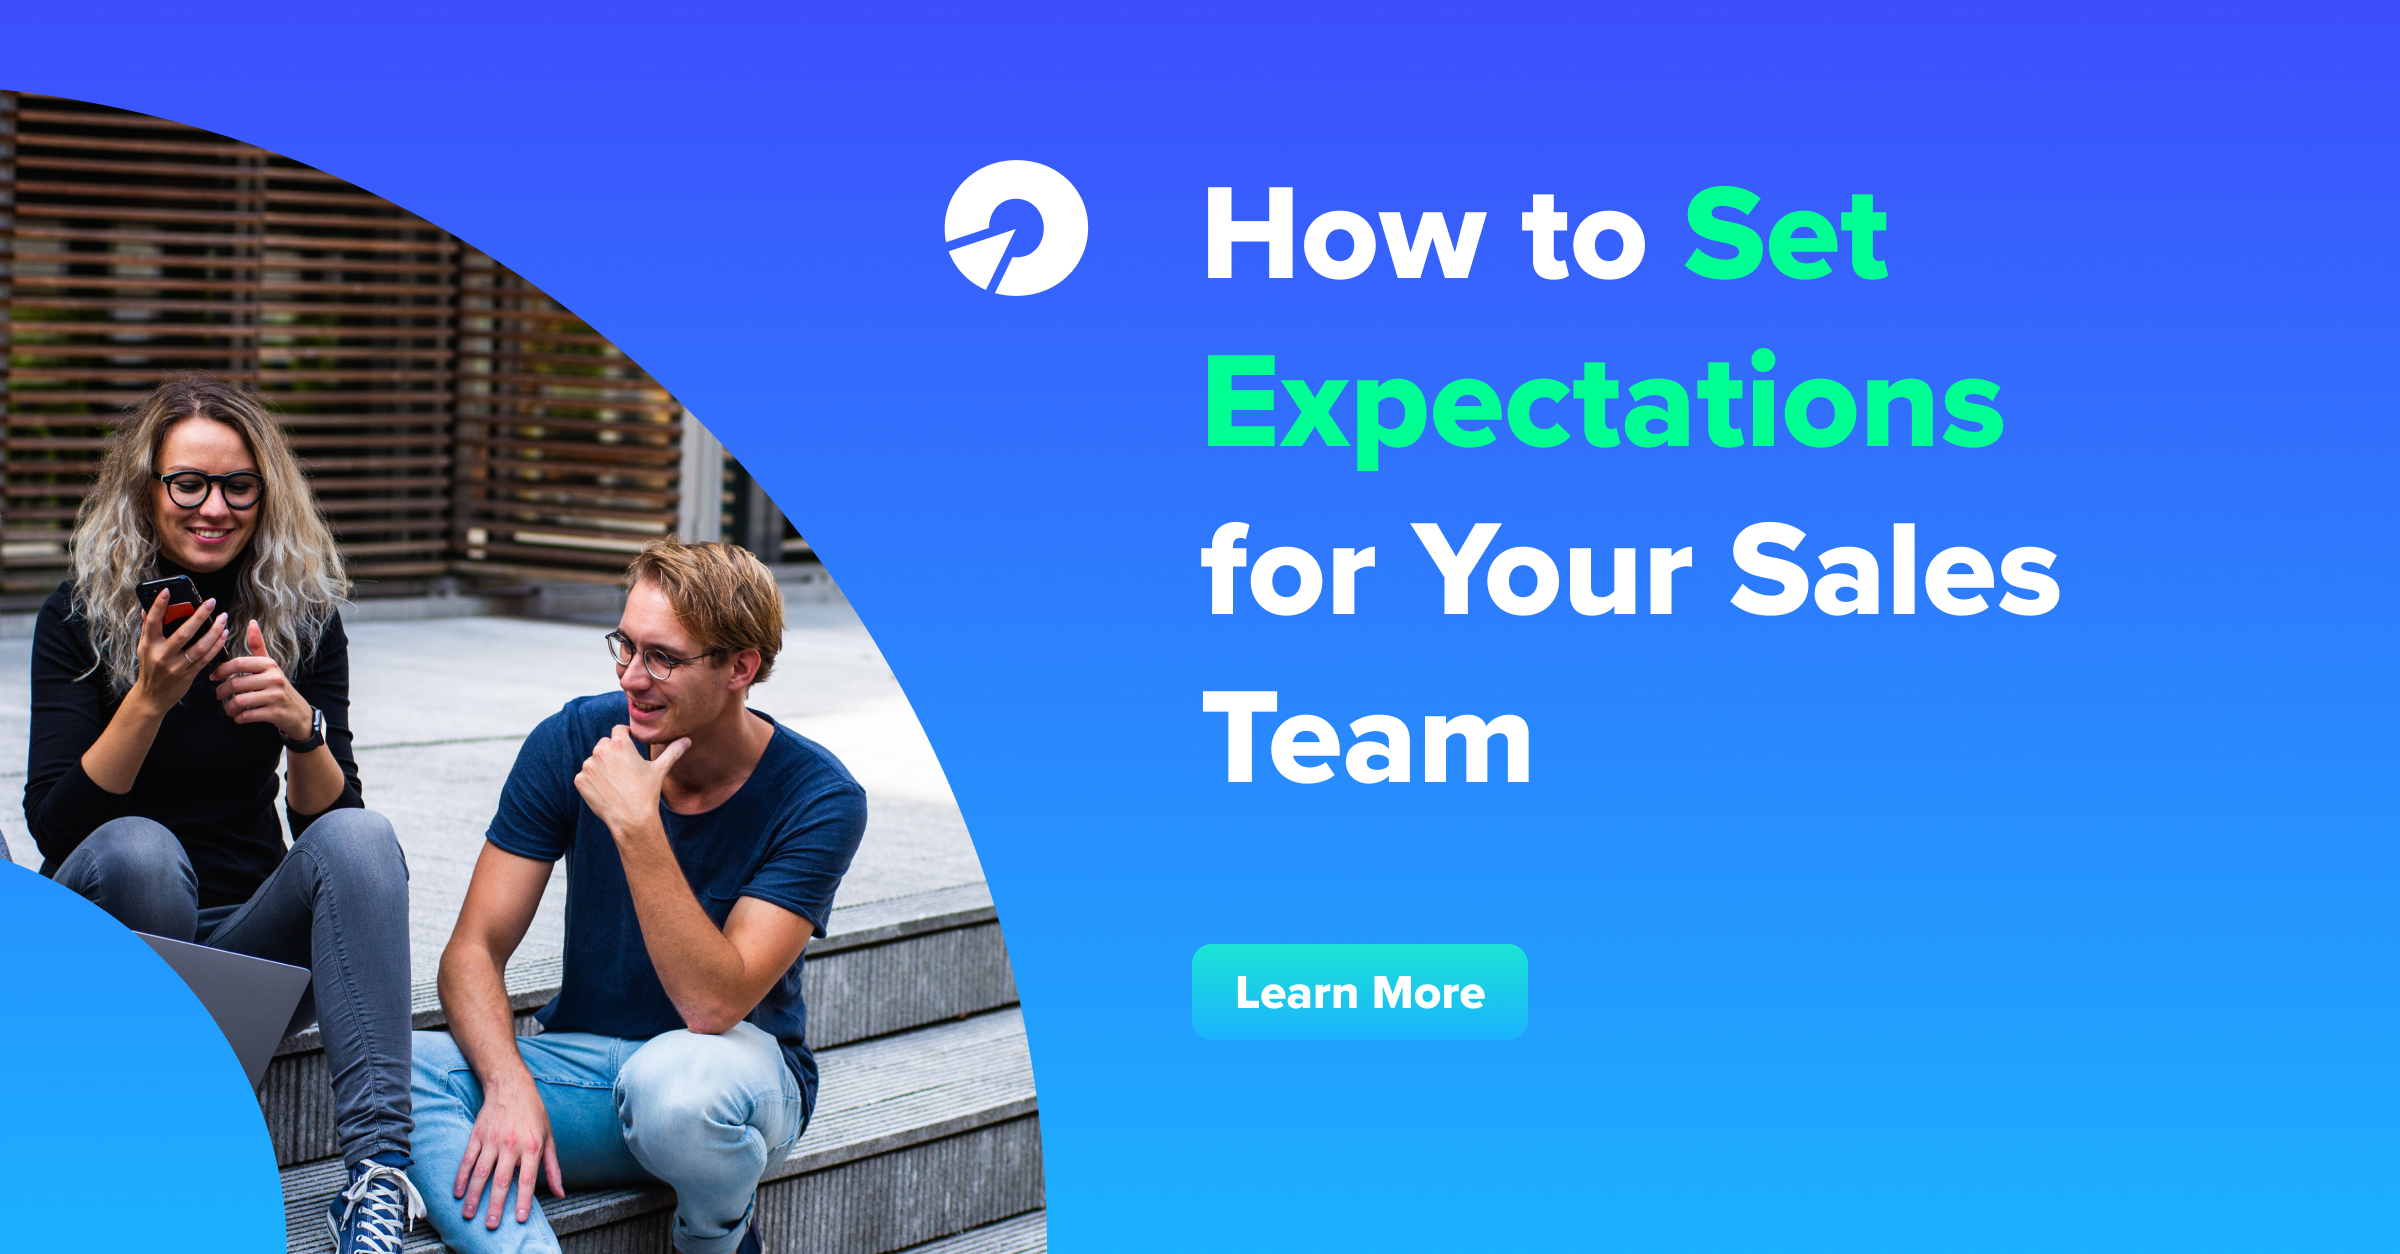 How to Set Expectations for Your Sales Team